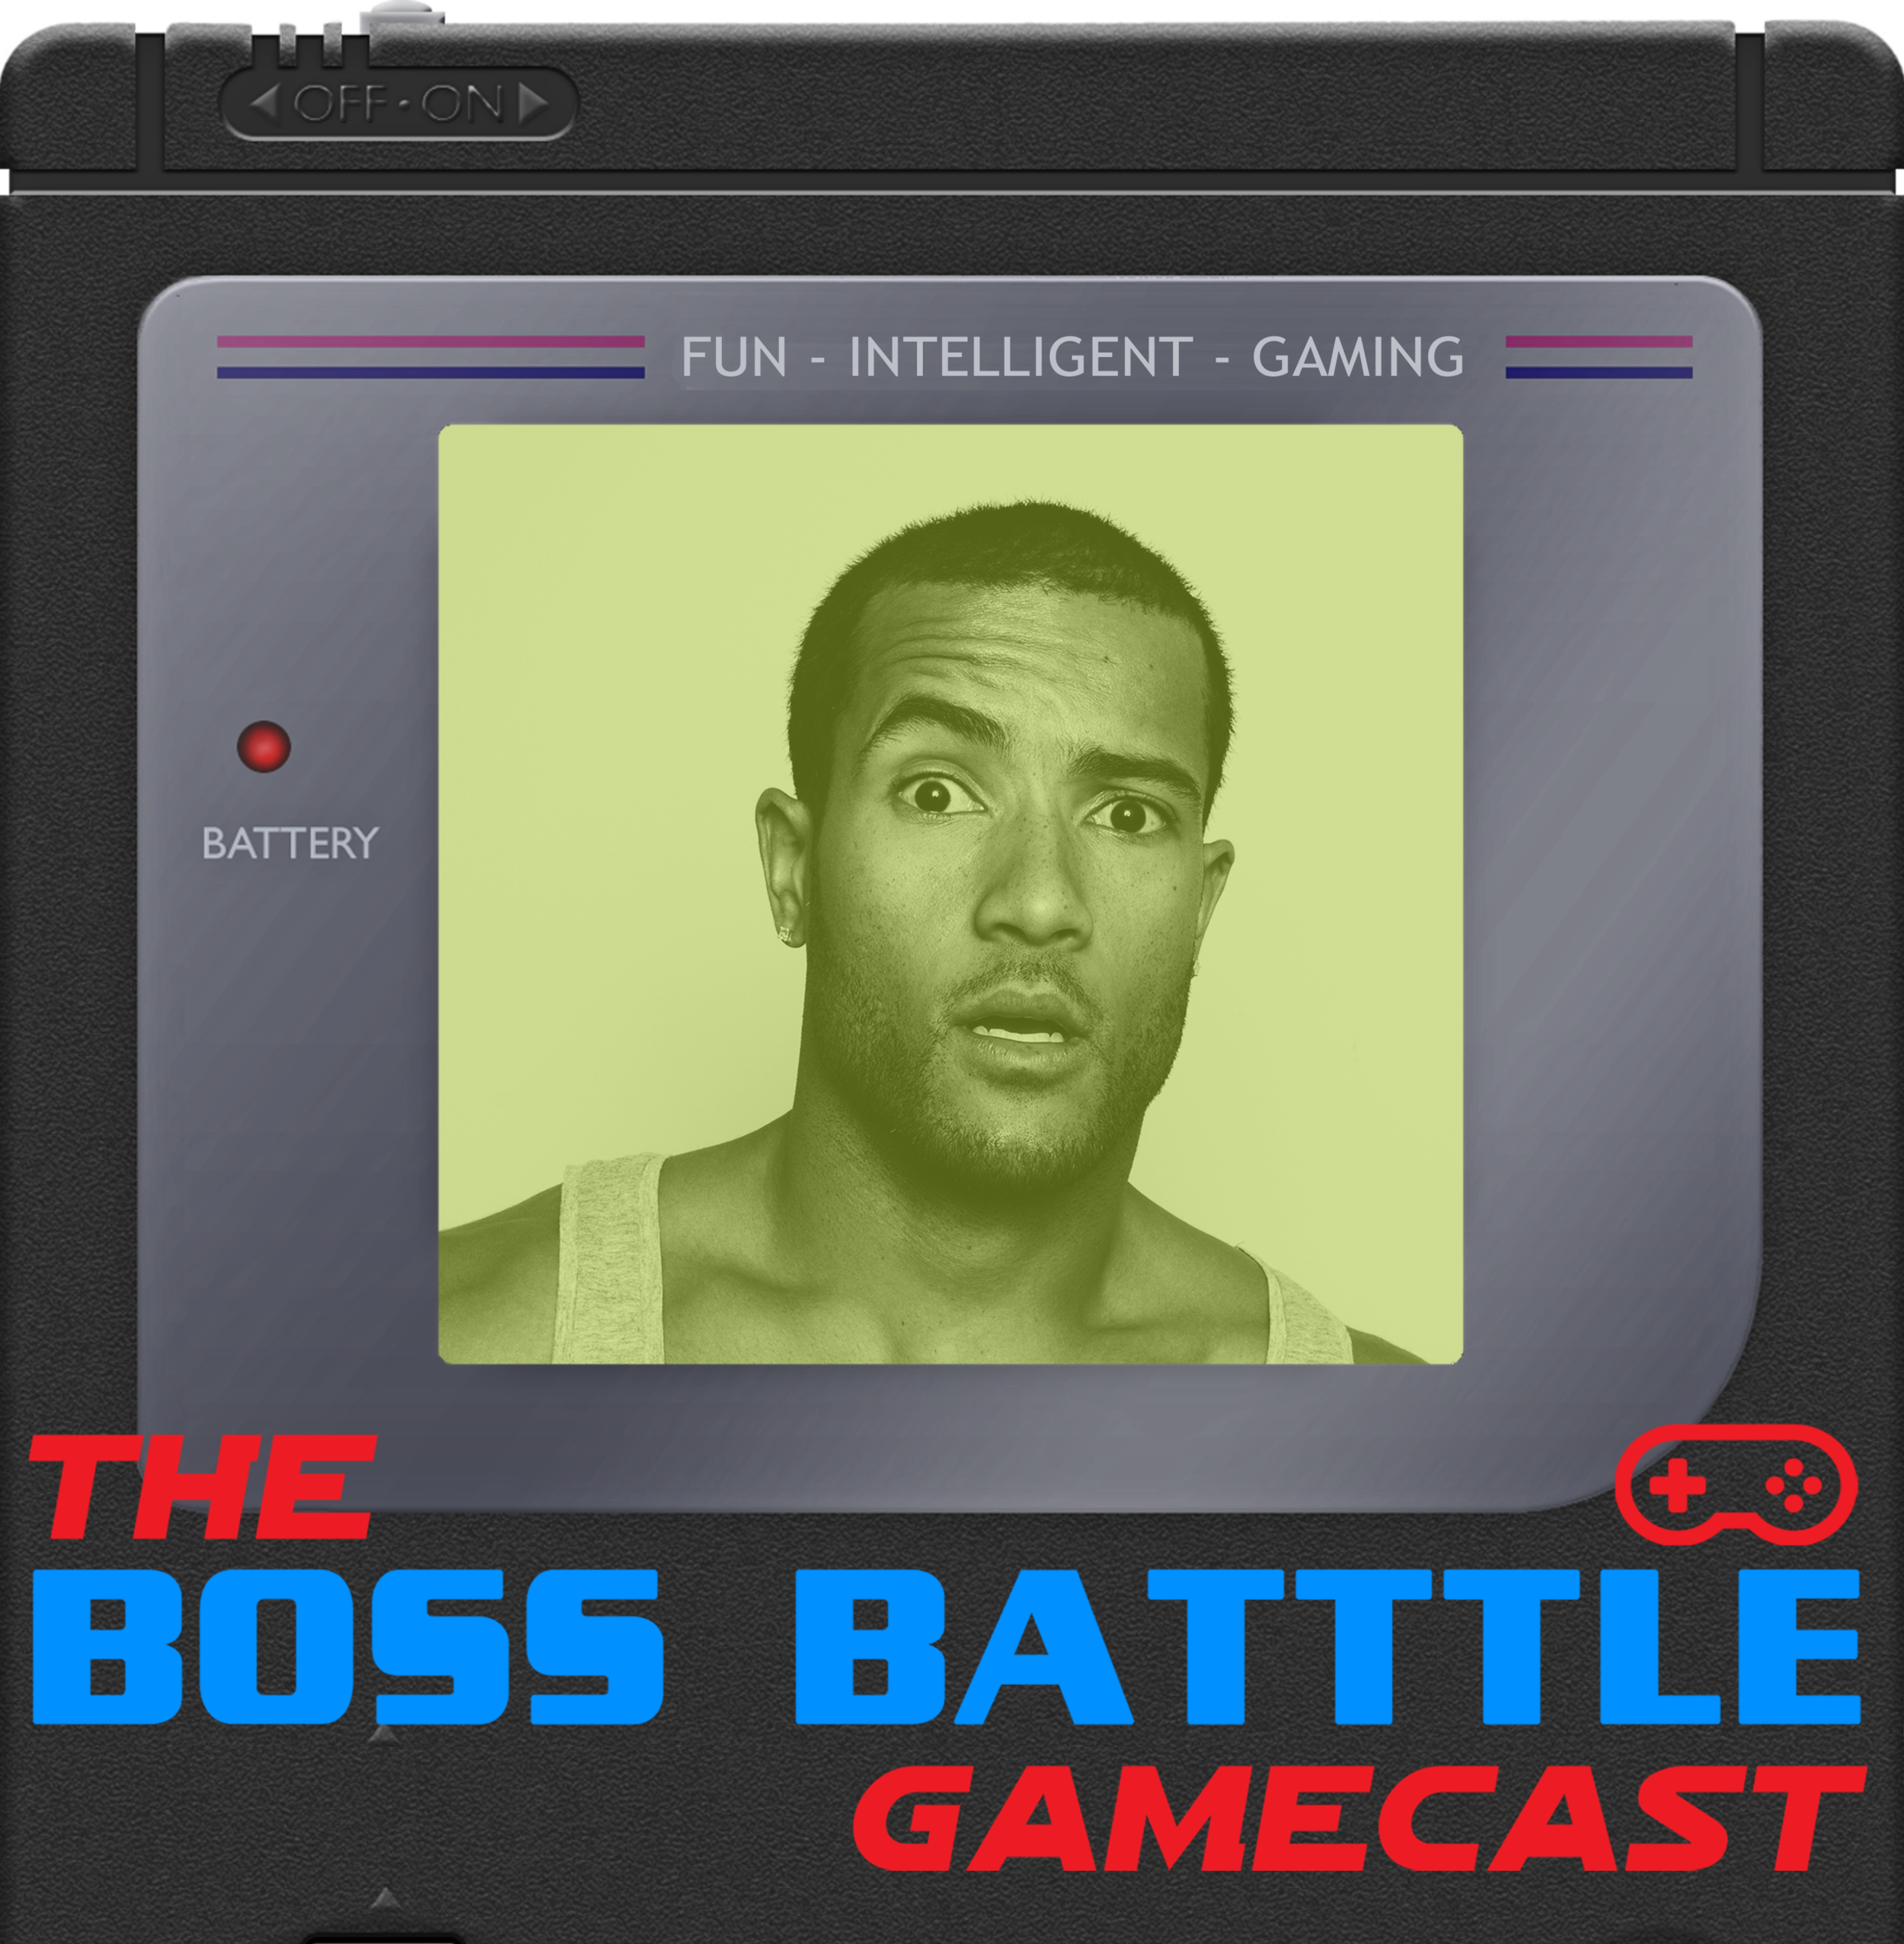 The Boss Battle Gamecast - with Host Ted Edwards - Cover Image